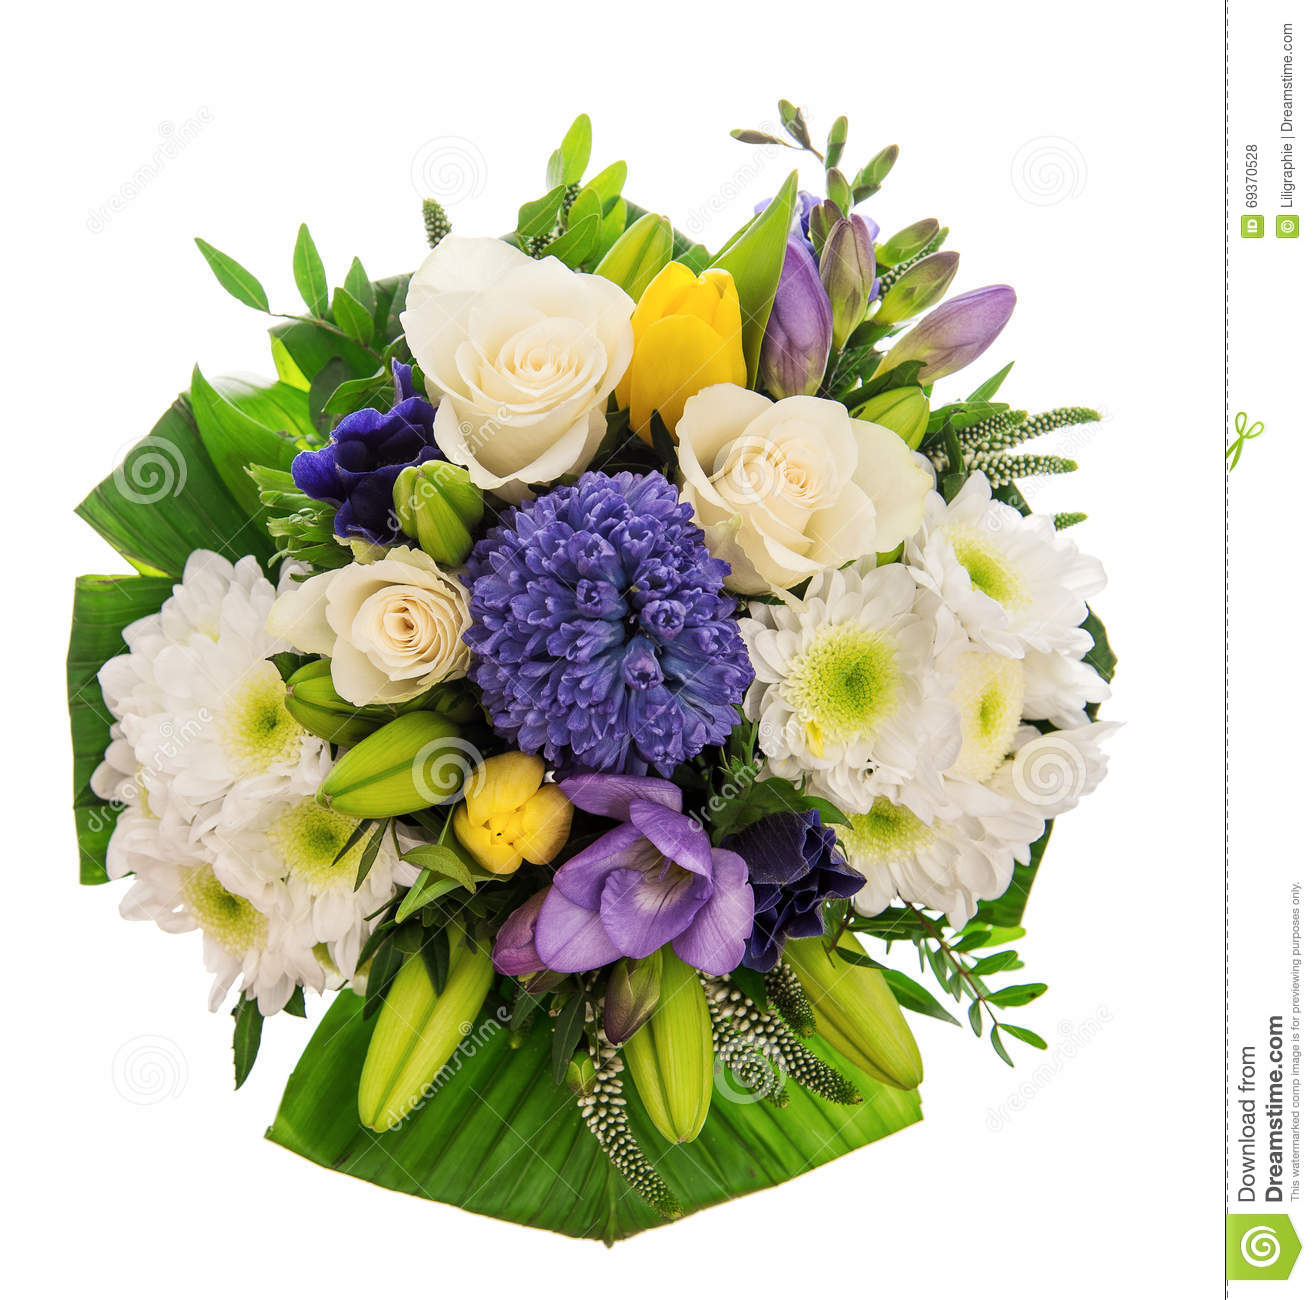 Spring flowers hyacinth roses tulips bouquet stock photo background bouquet hyacinth dhlflorist Choice Image